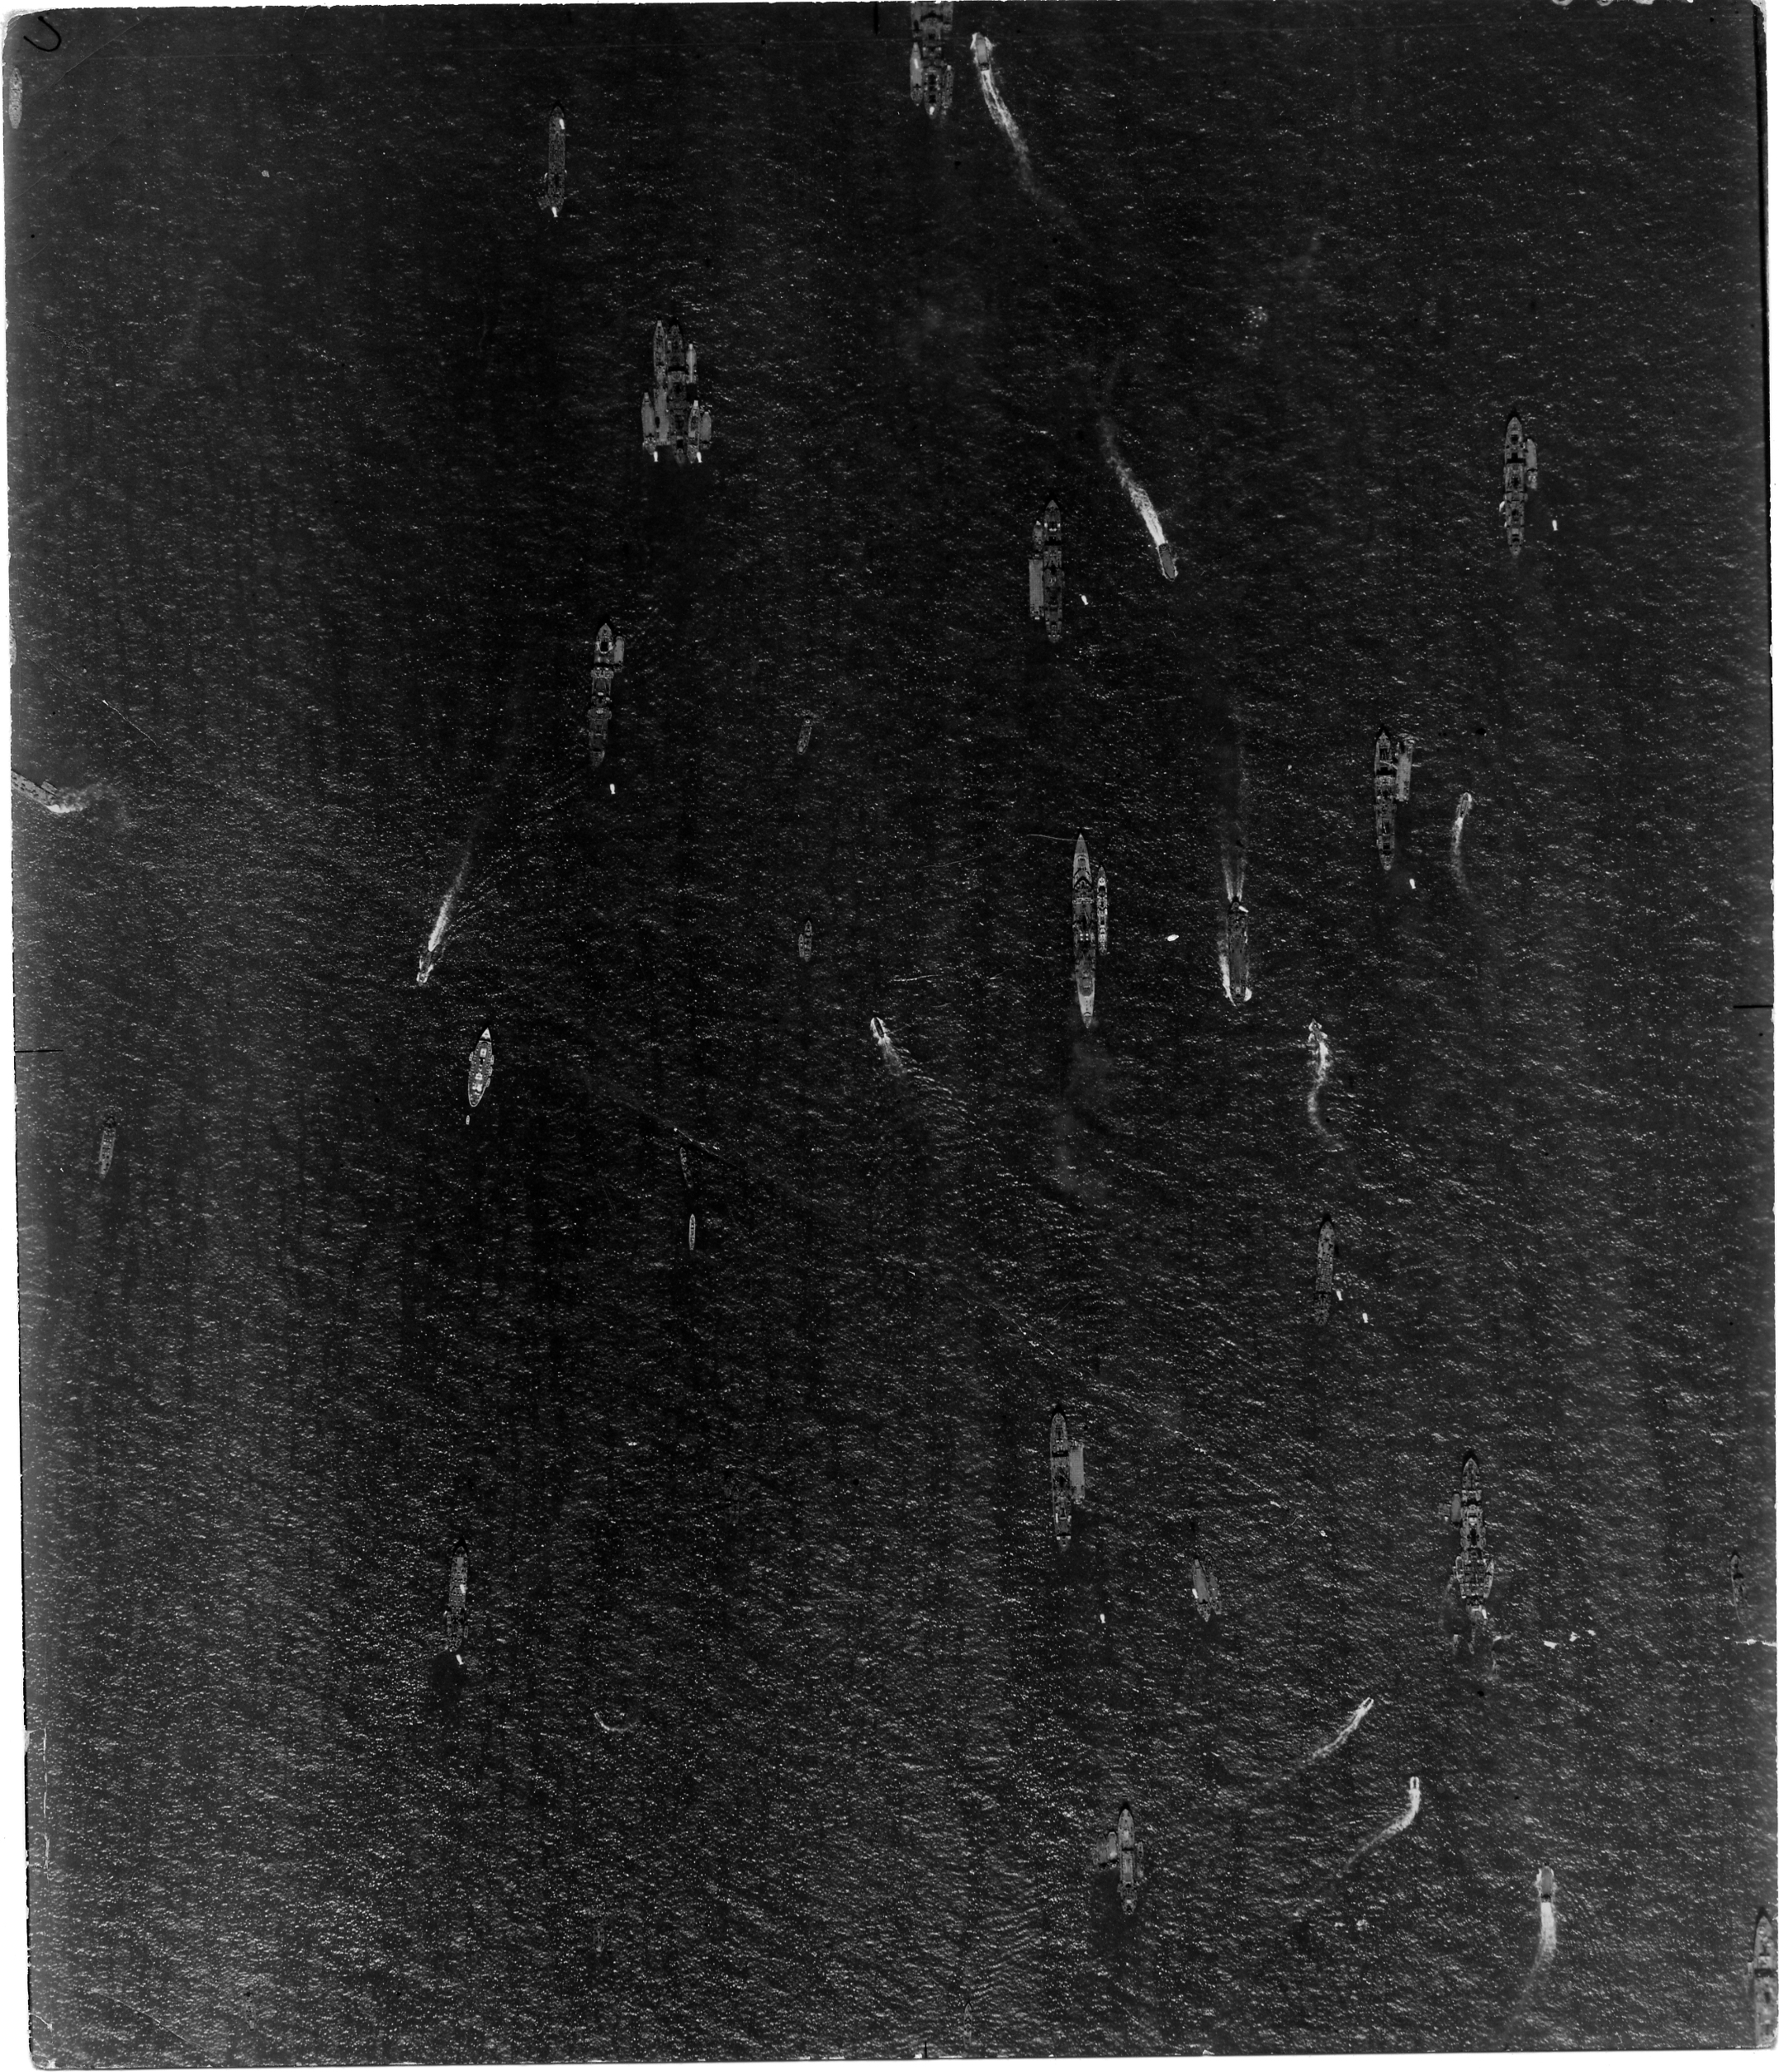 USAAAF 7PG22FS aerial recon photo to D Day+6 France June 12 1944 01